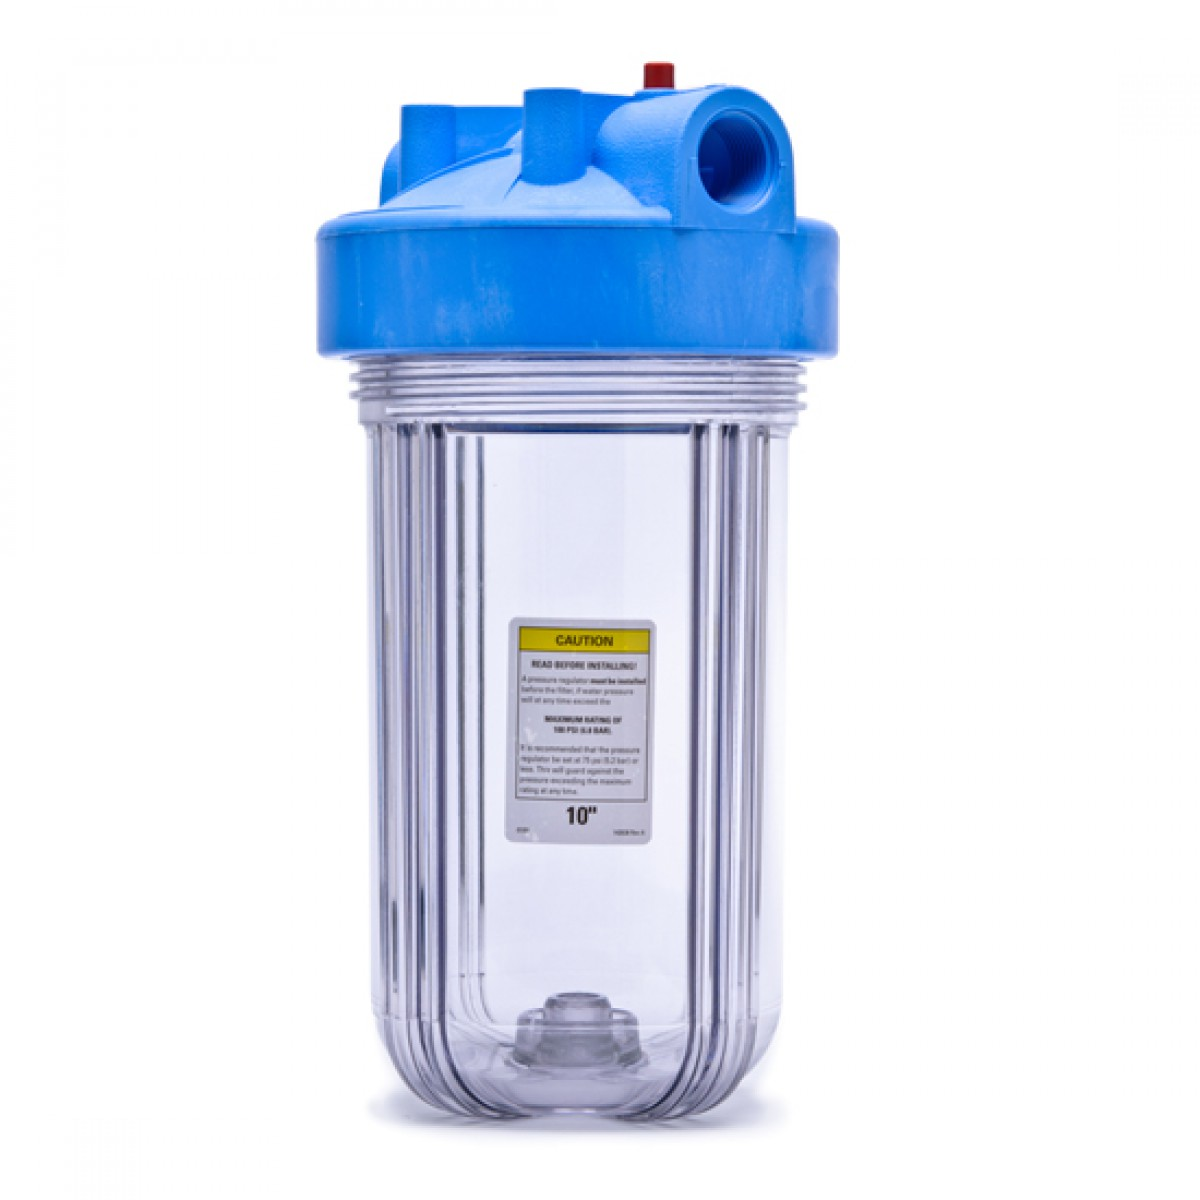 House Water Filter Pentek Big Clear Lx 10 Whole House Water Filter 10 In Housing